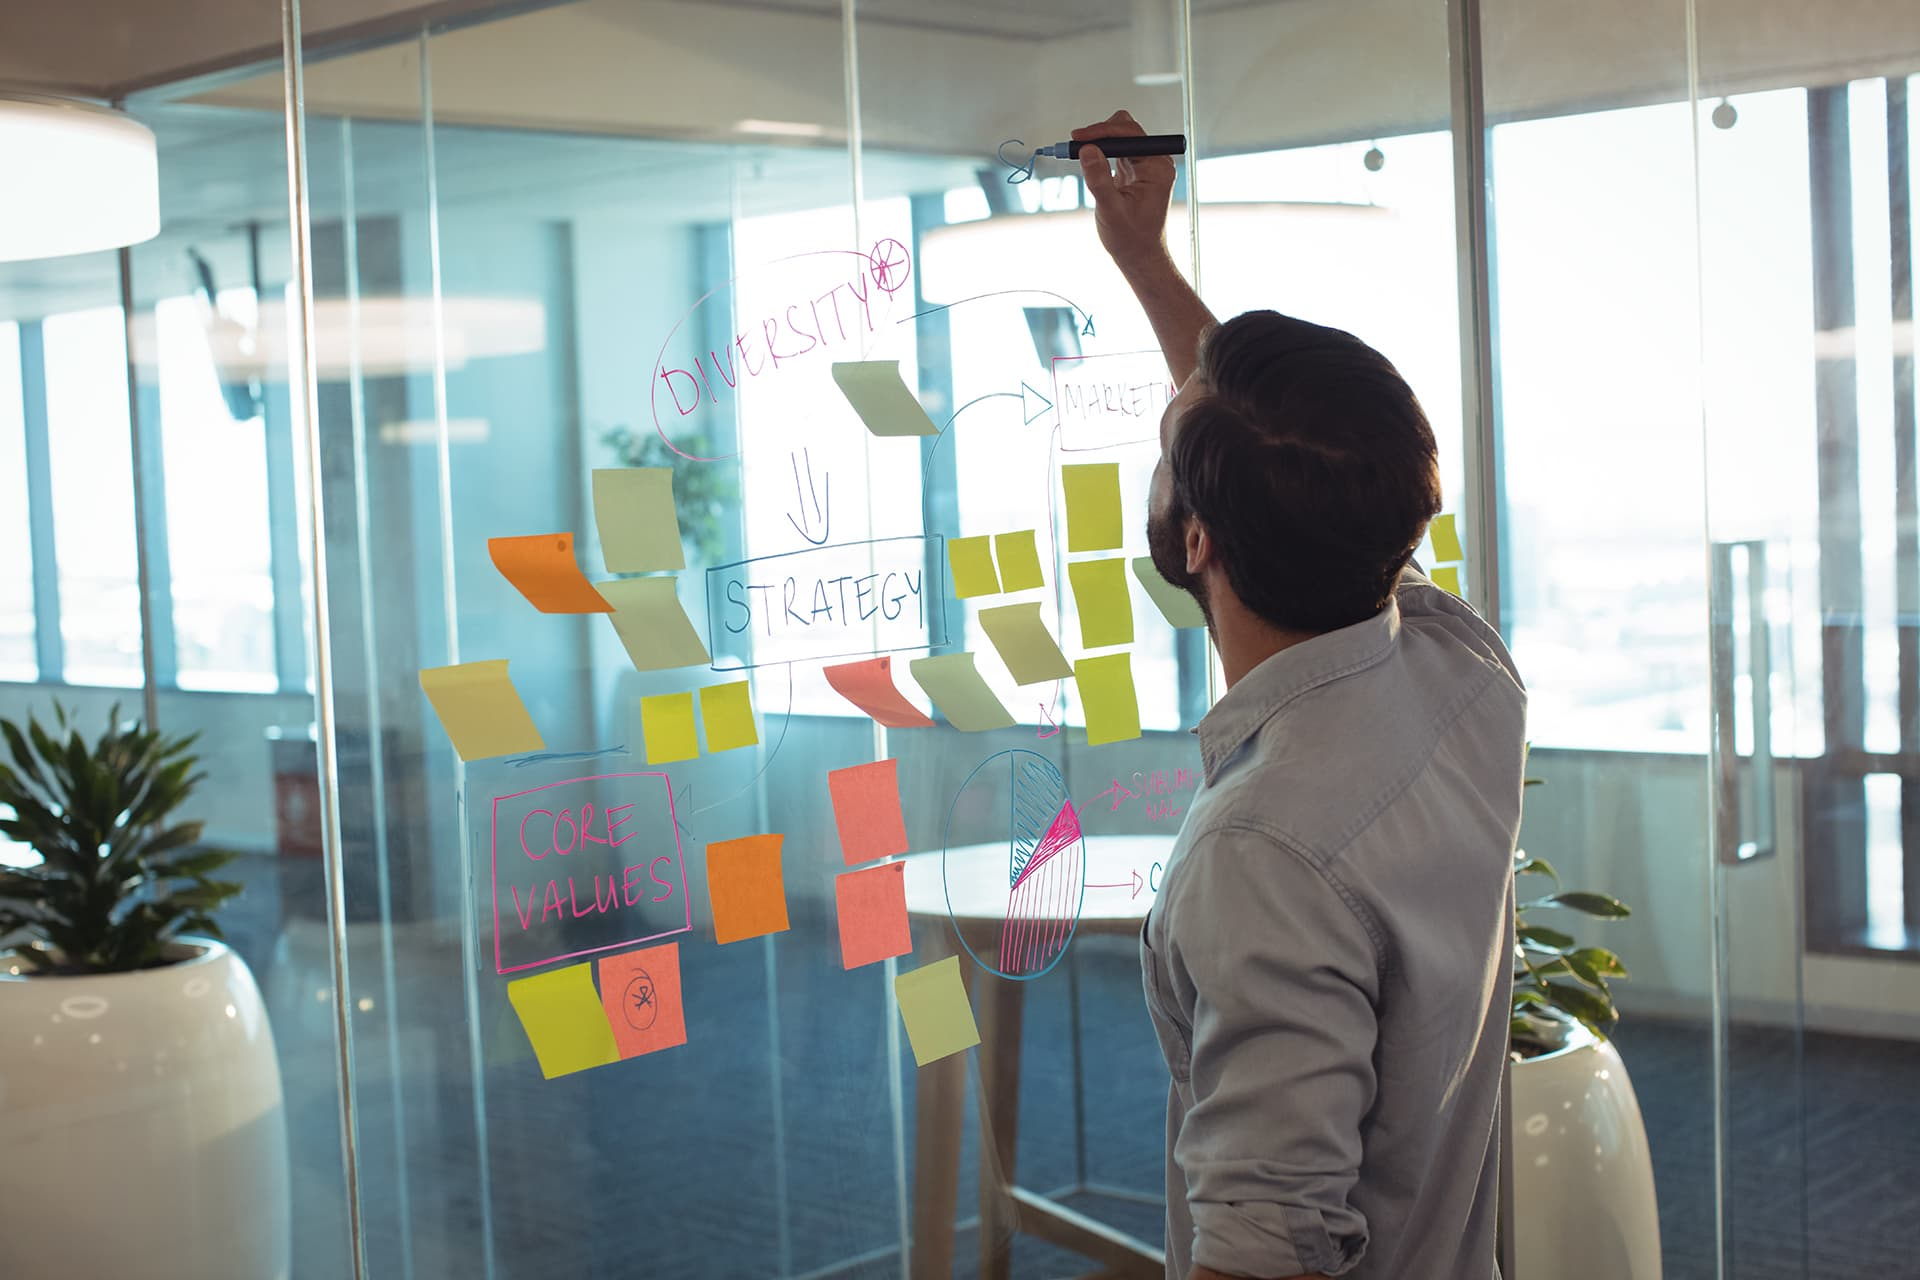 Man writing on glass wall with whiteboard pen and using post-it notes to map out customer journey.